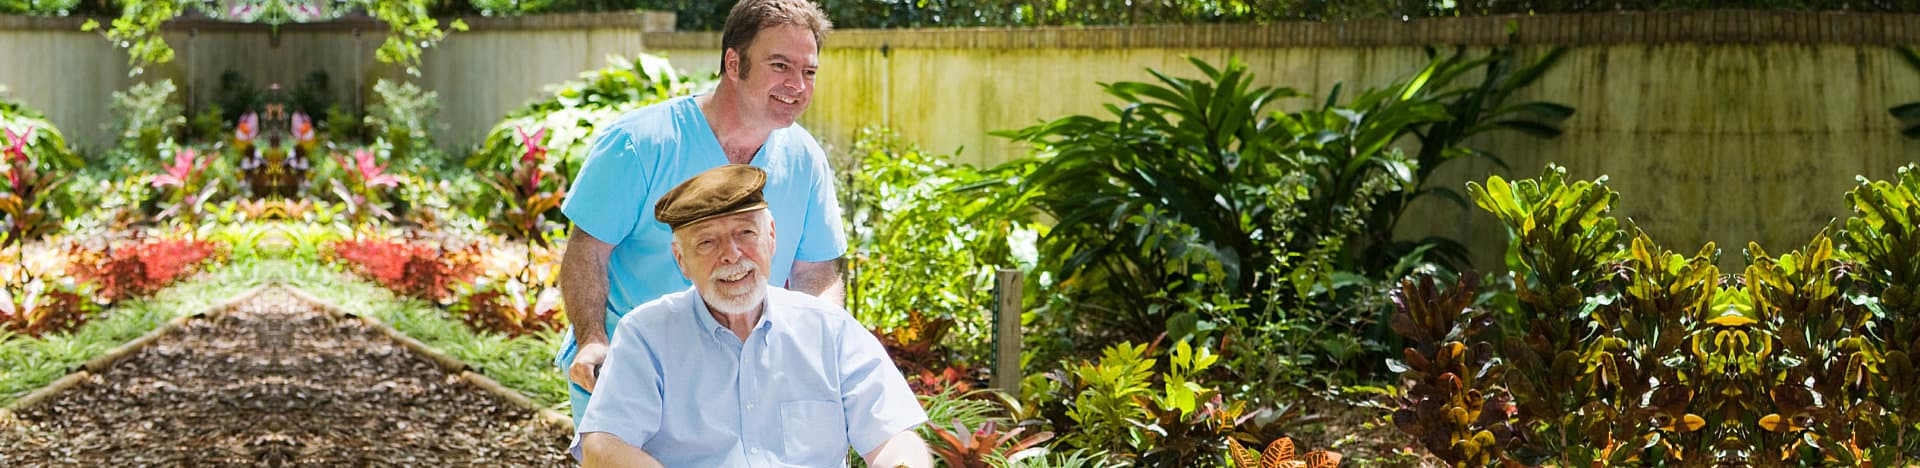 Caregiver caring the old man